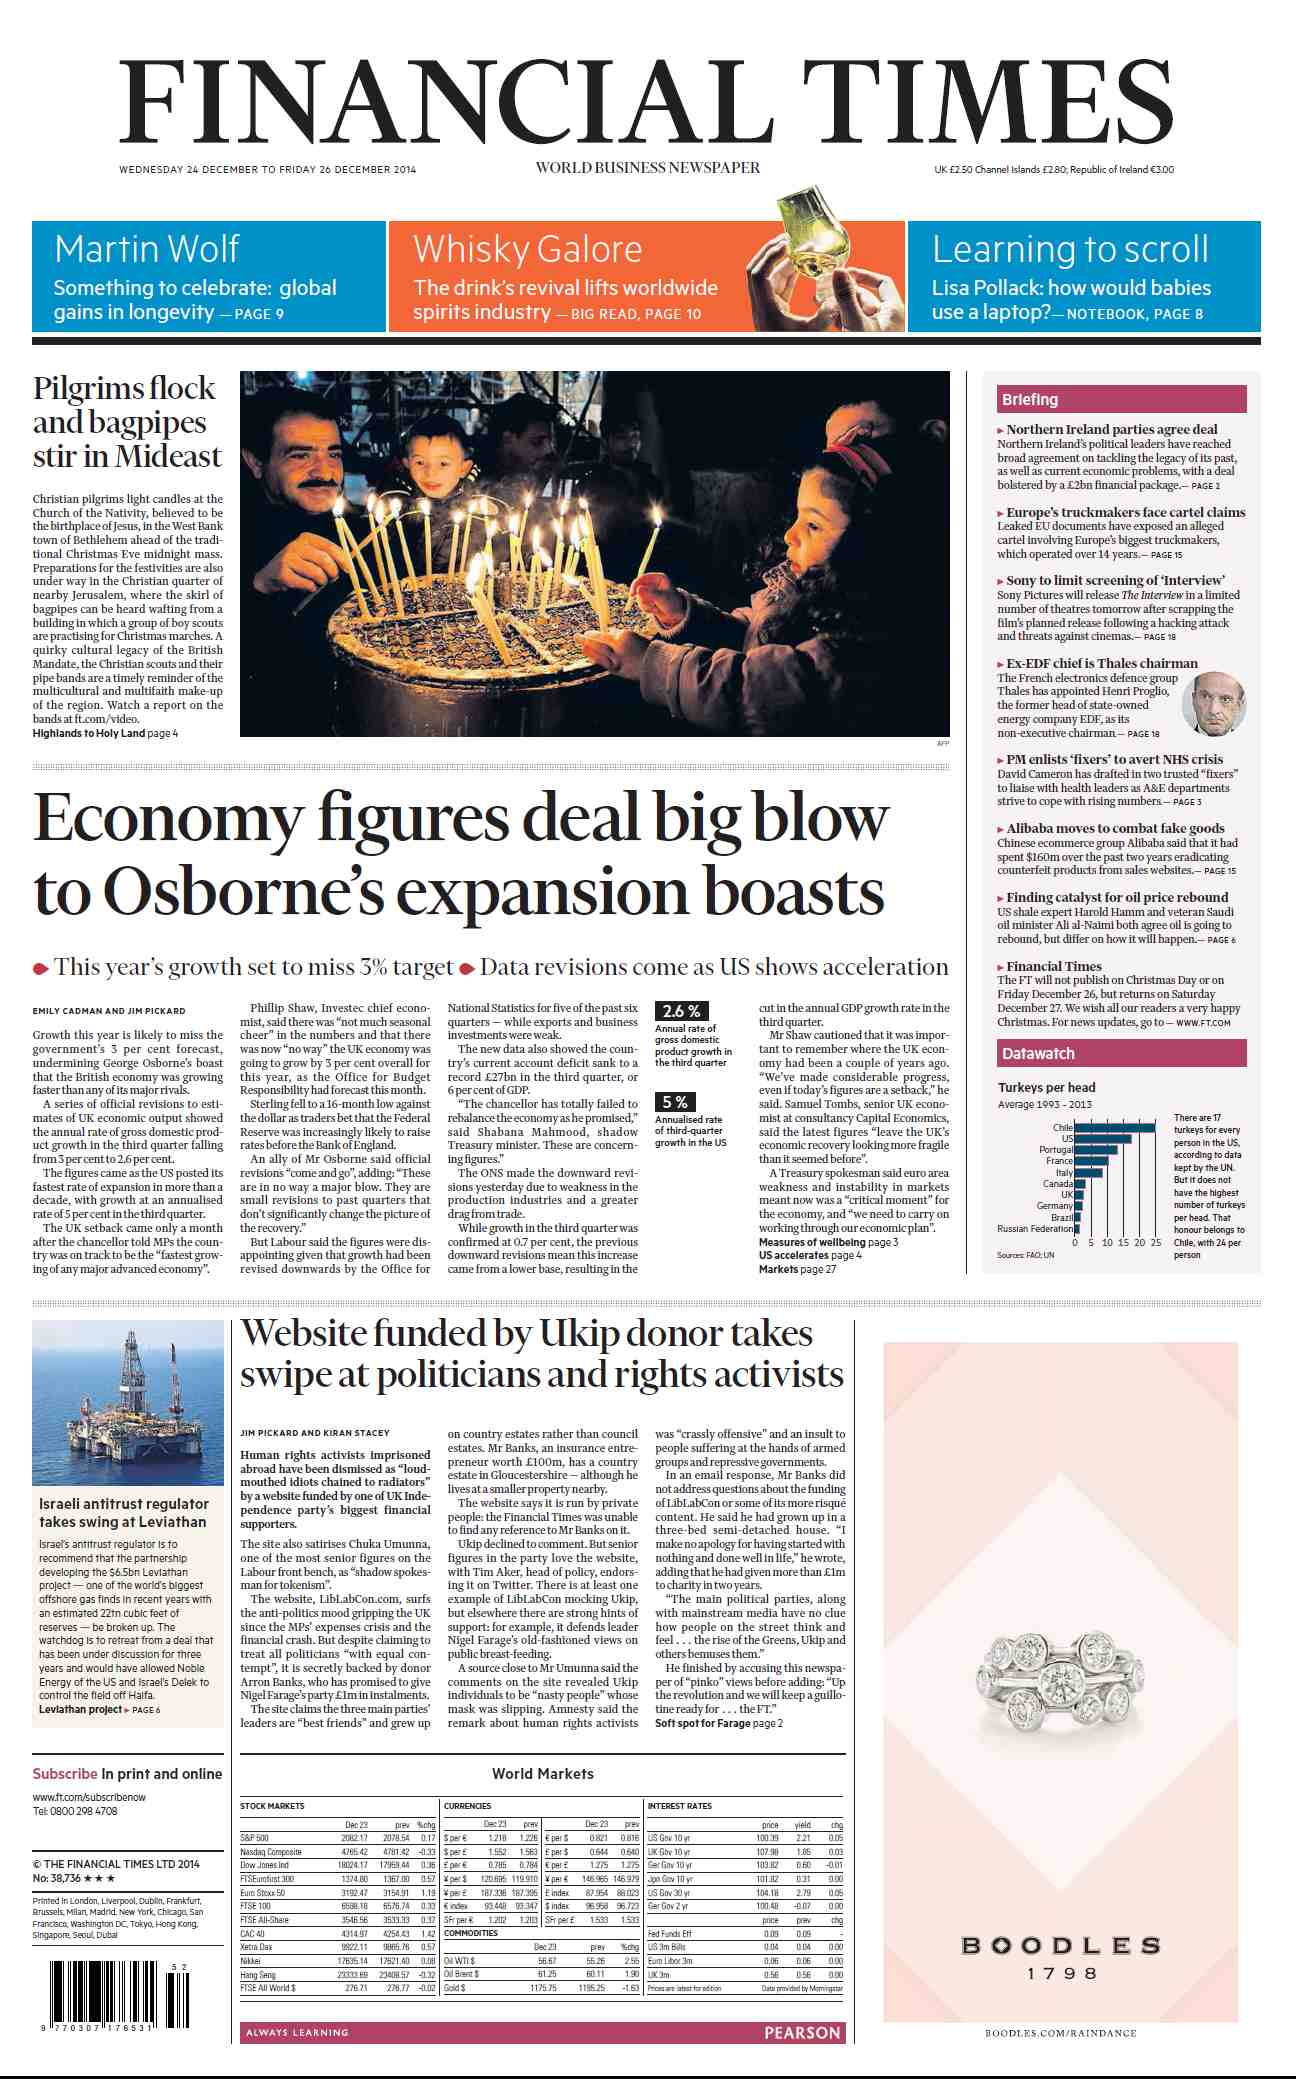 Financial Times  December 24, 2014 free download